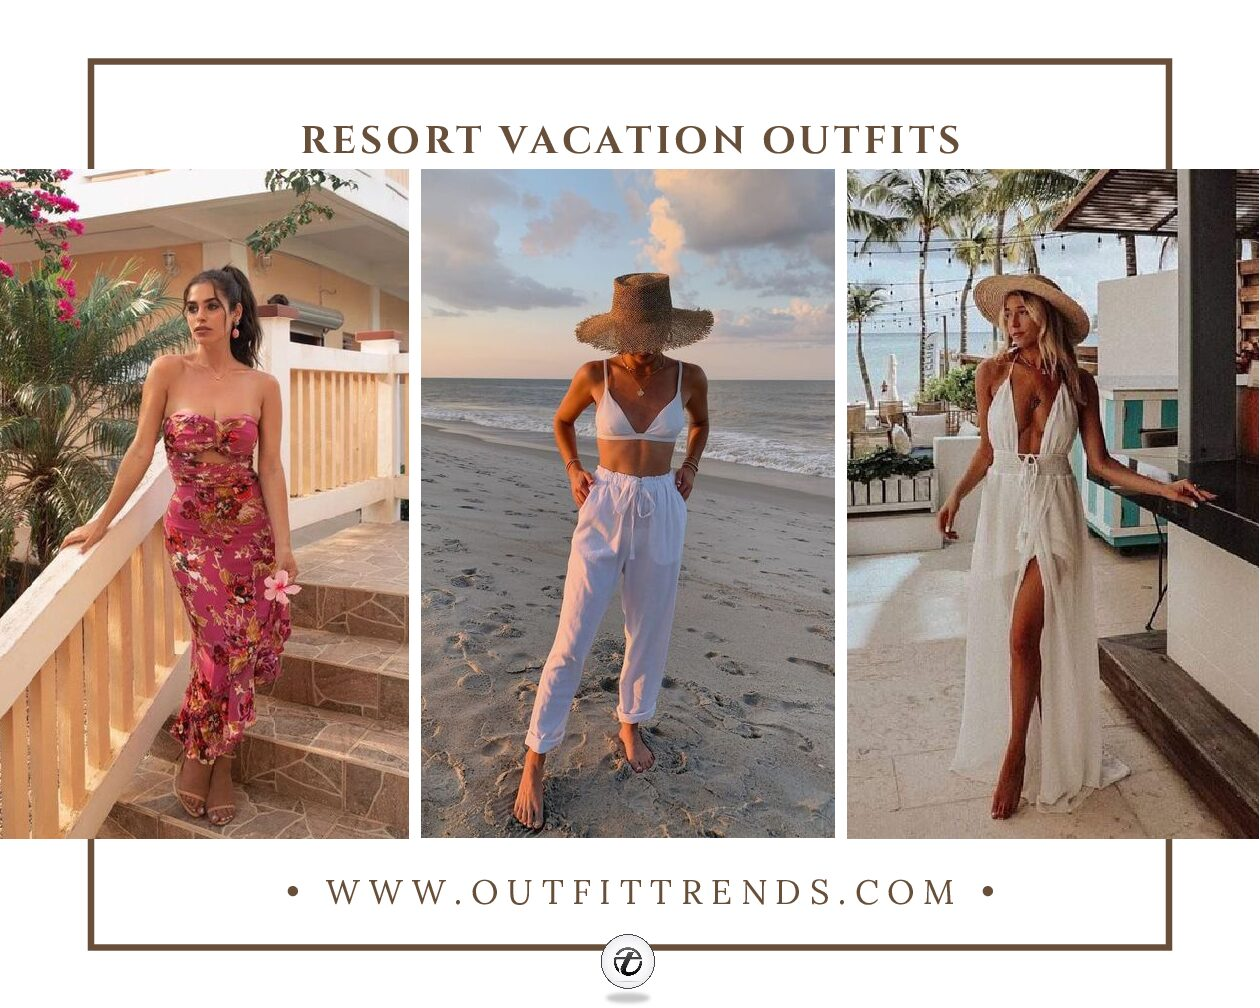 Resort Vacation Outfits – 20 Outfits To Pack For The Resort